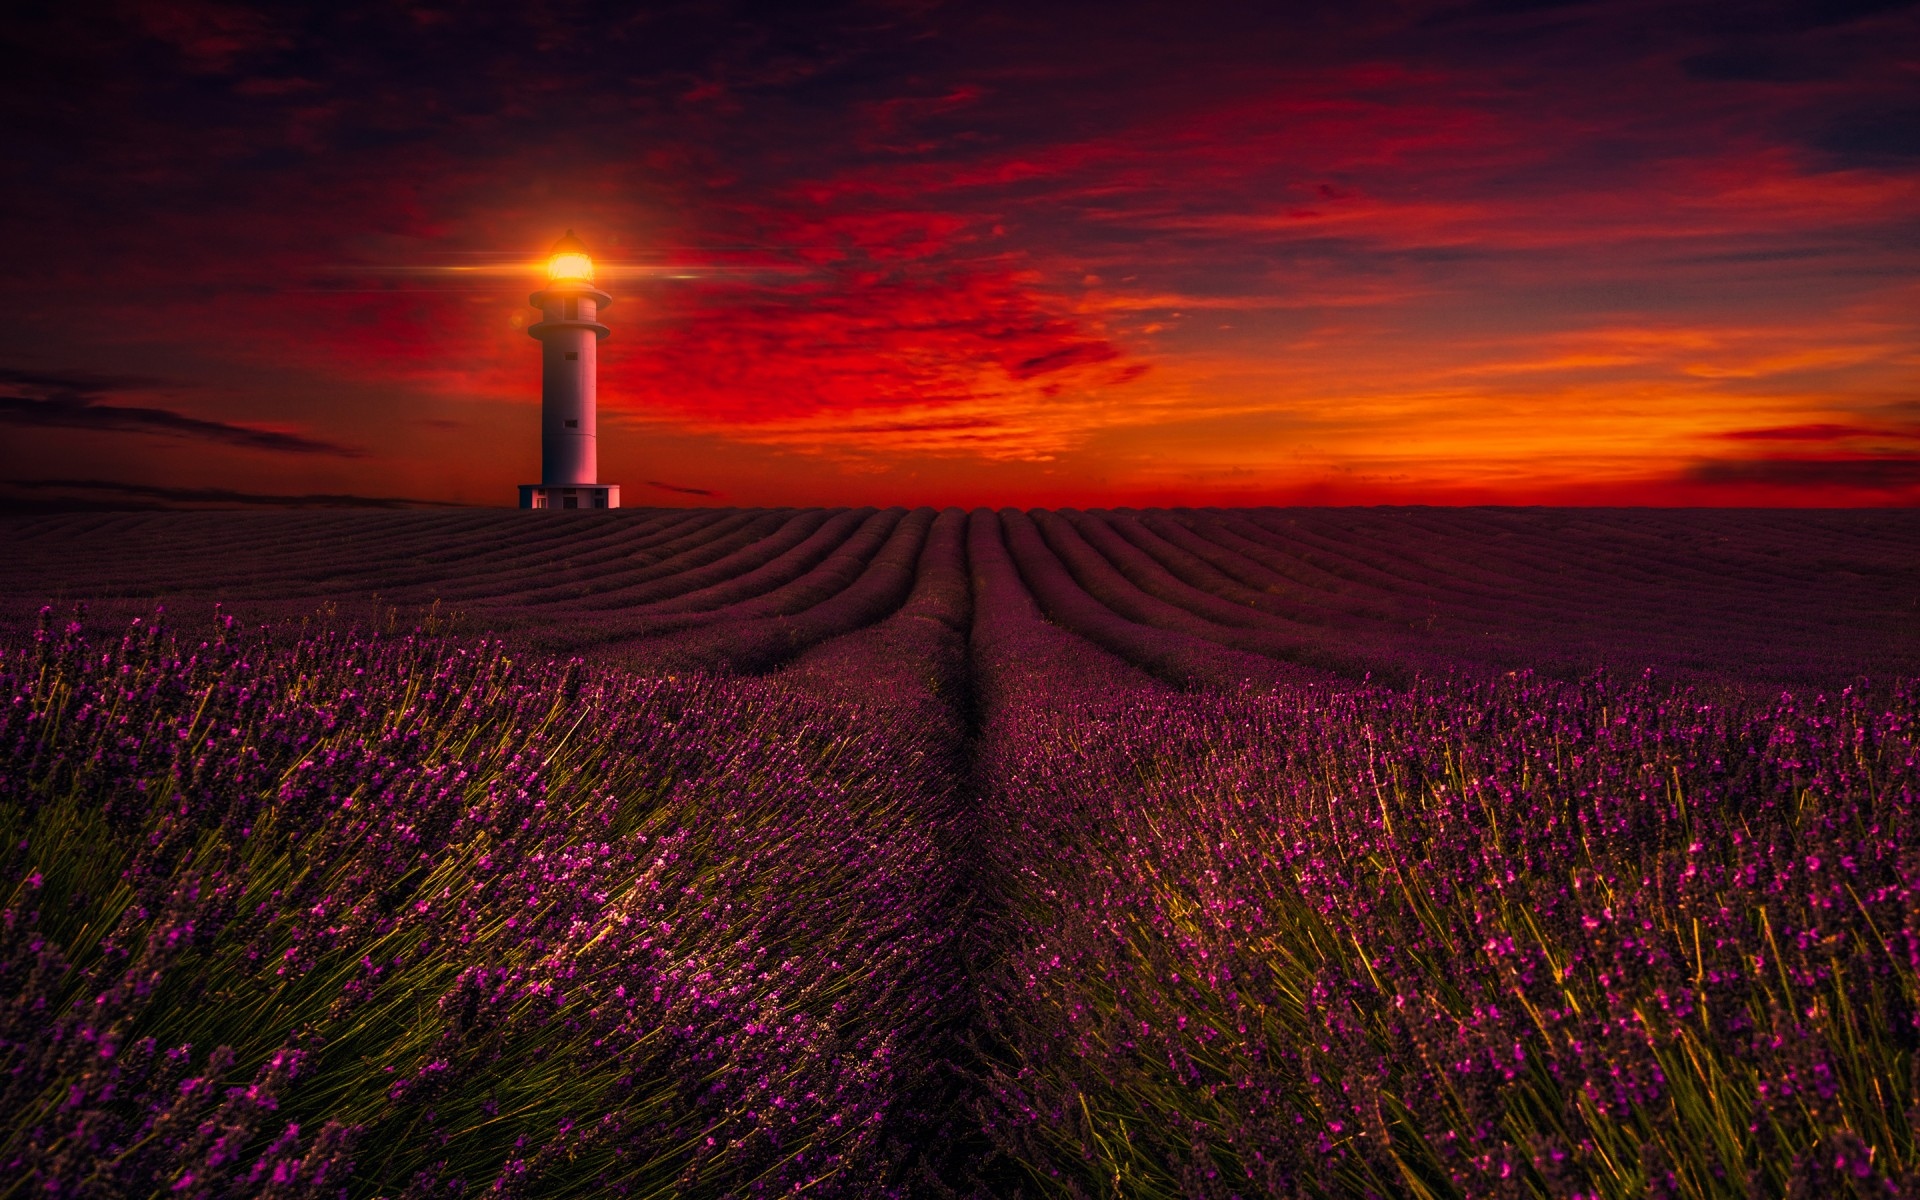 Beautiful Winter Wallpapers Hd Sunset Lavender Field Lighthouse 5k Wallpapers Hd